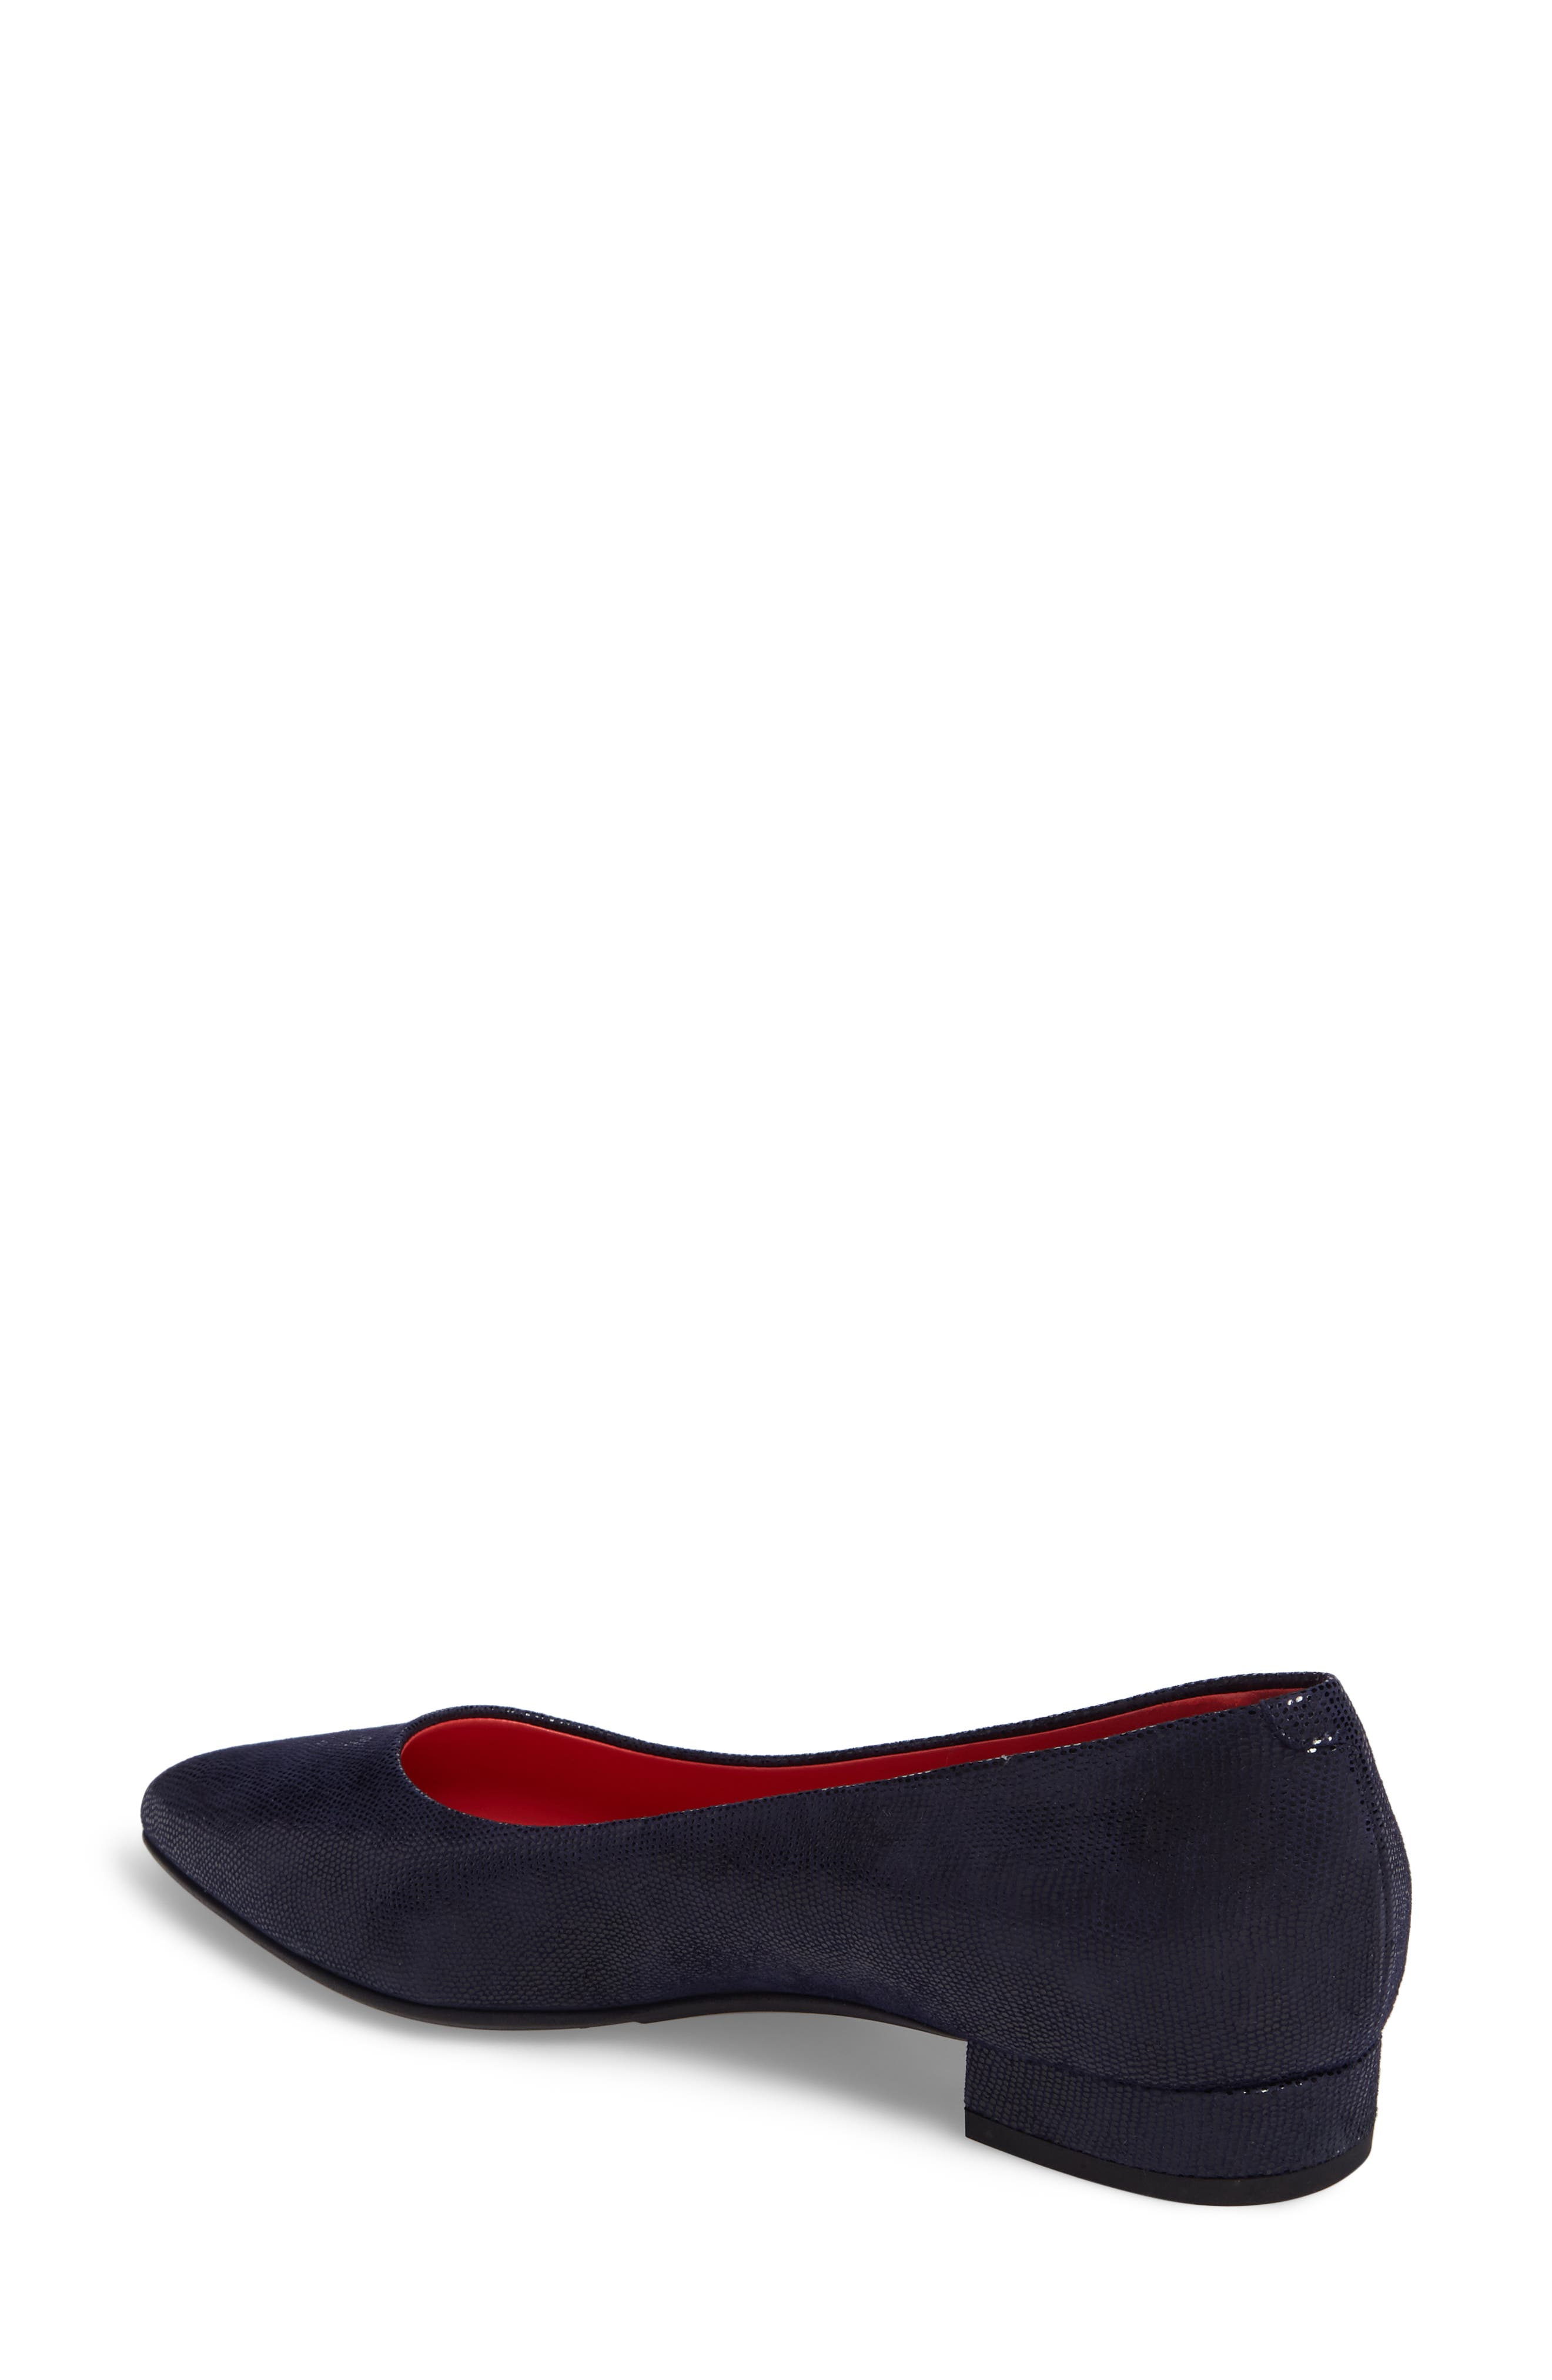 Pointy Toe Low Pump,                             Alternate thumbnail 2, color,                             Blue Leather